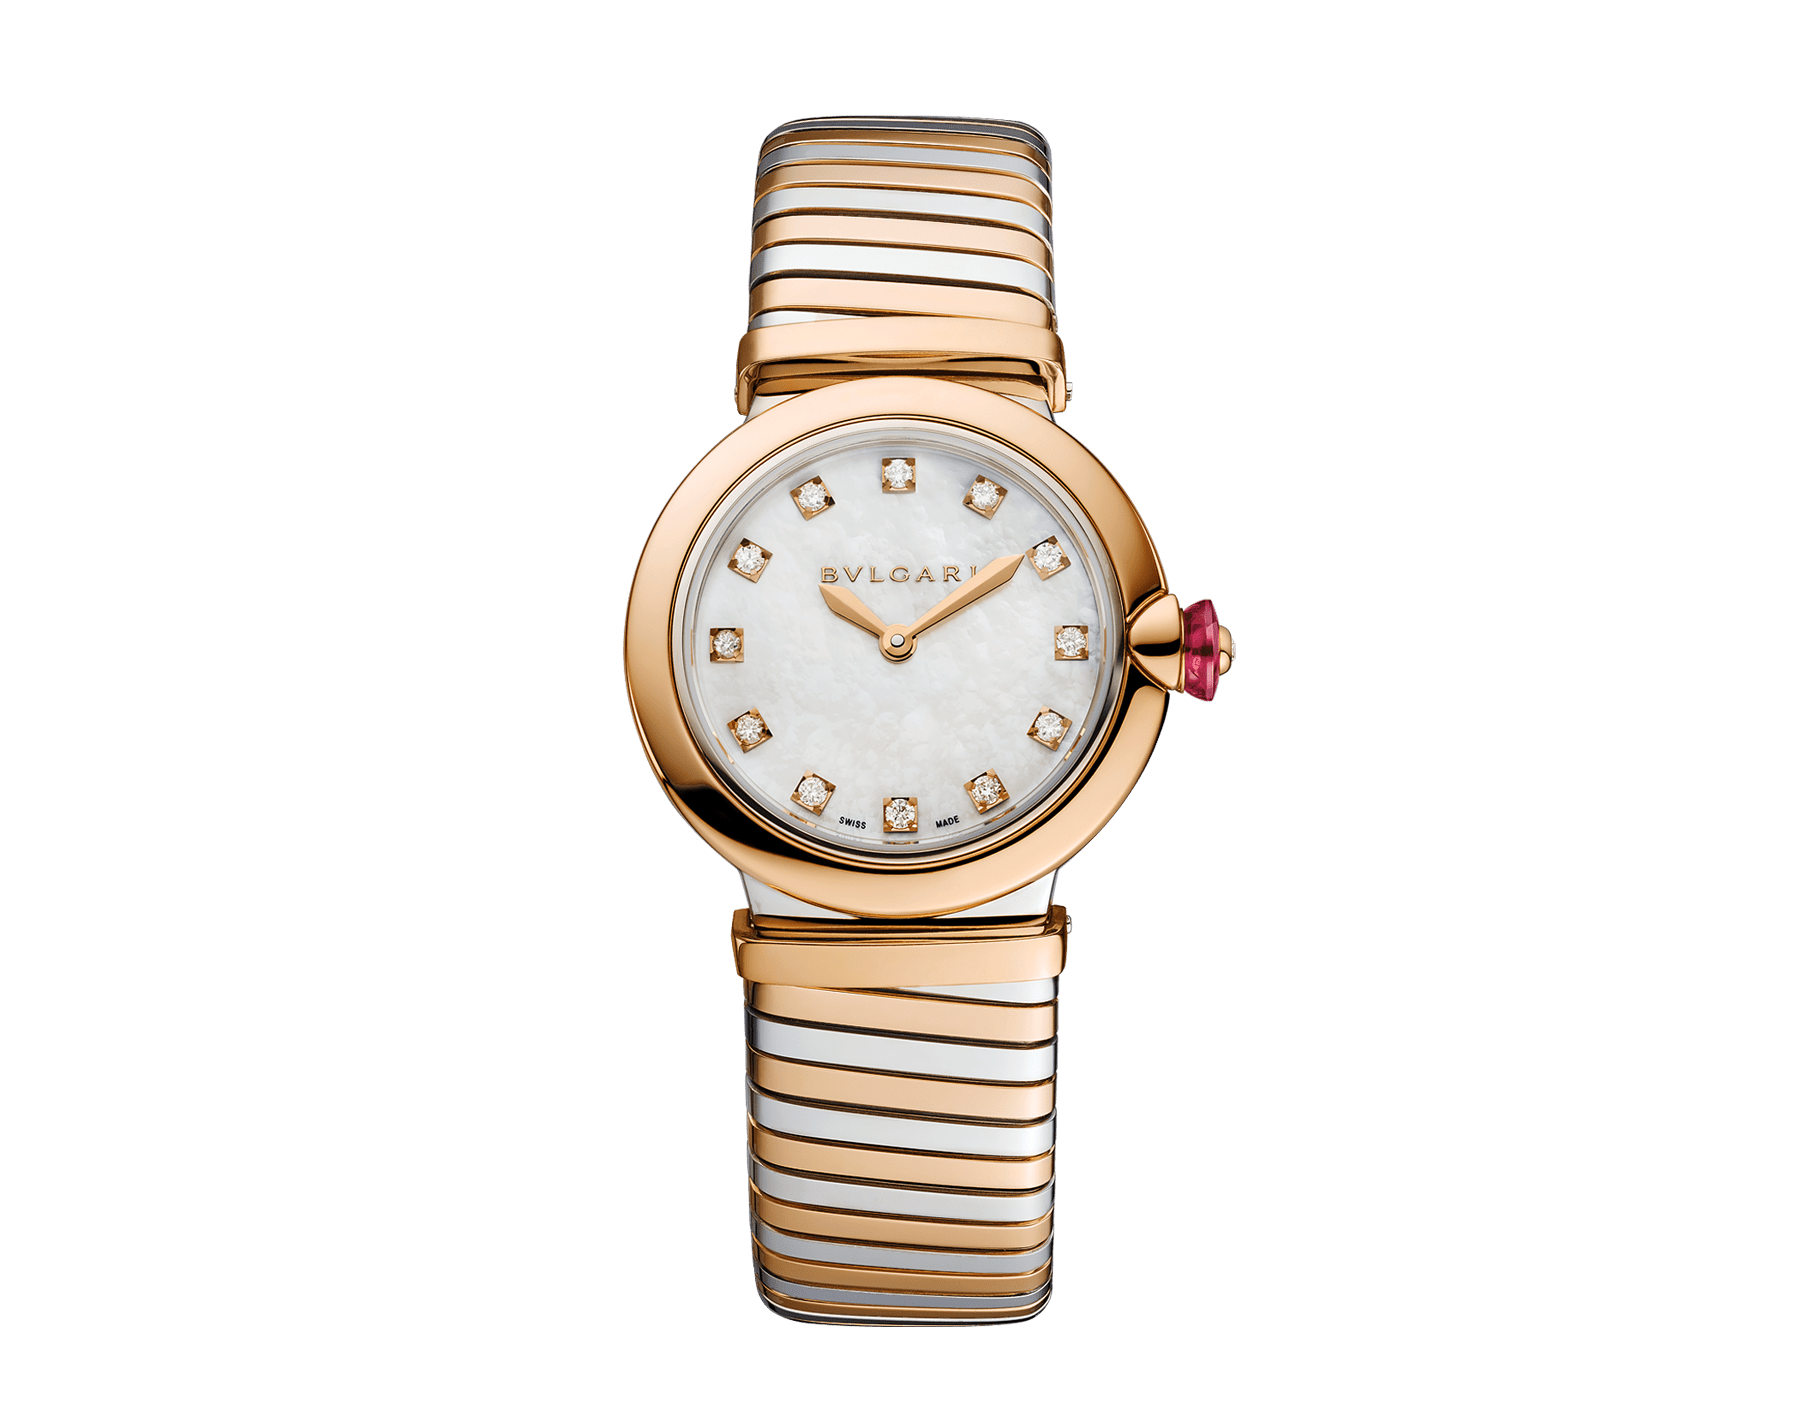 LVCEA Tubogas watch in 18 kt rose gold and stainless steel case and tubogas bracelet, with white mother-of-pearl dial and diamond indexes 102952 image 1